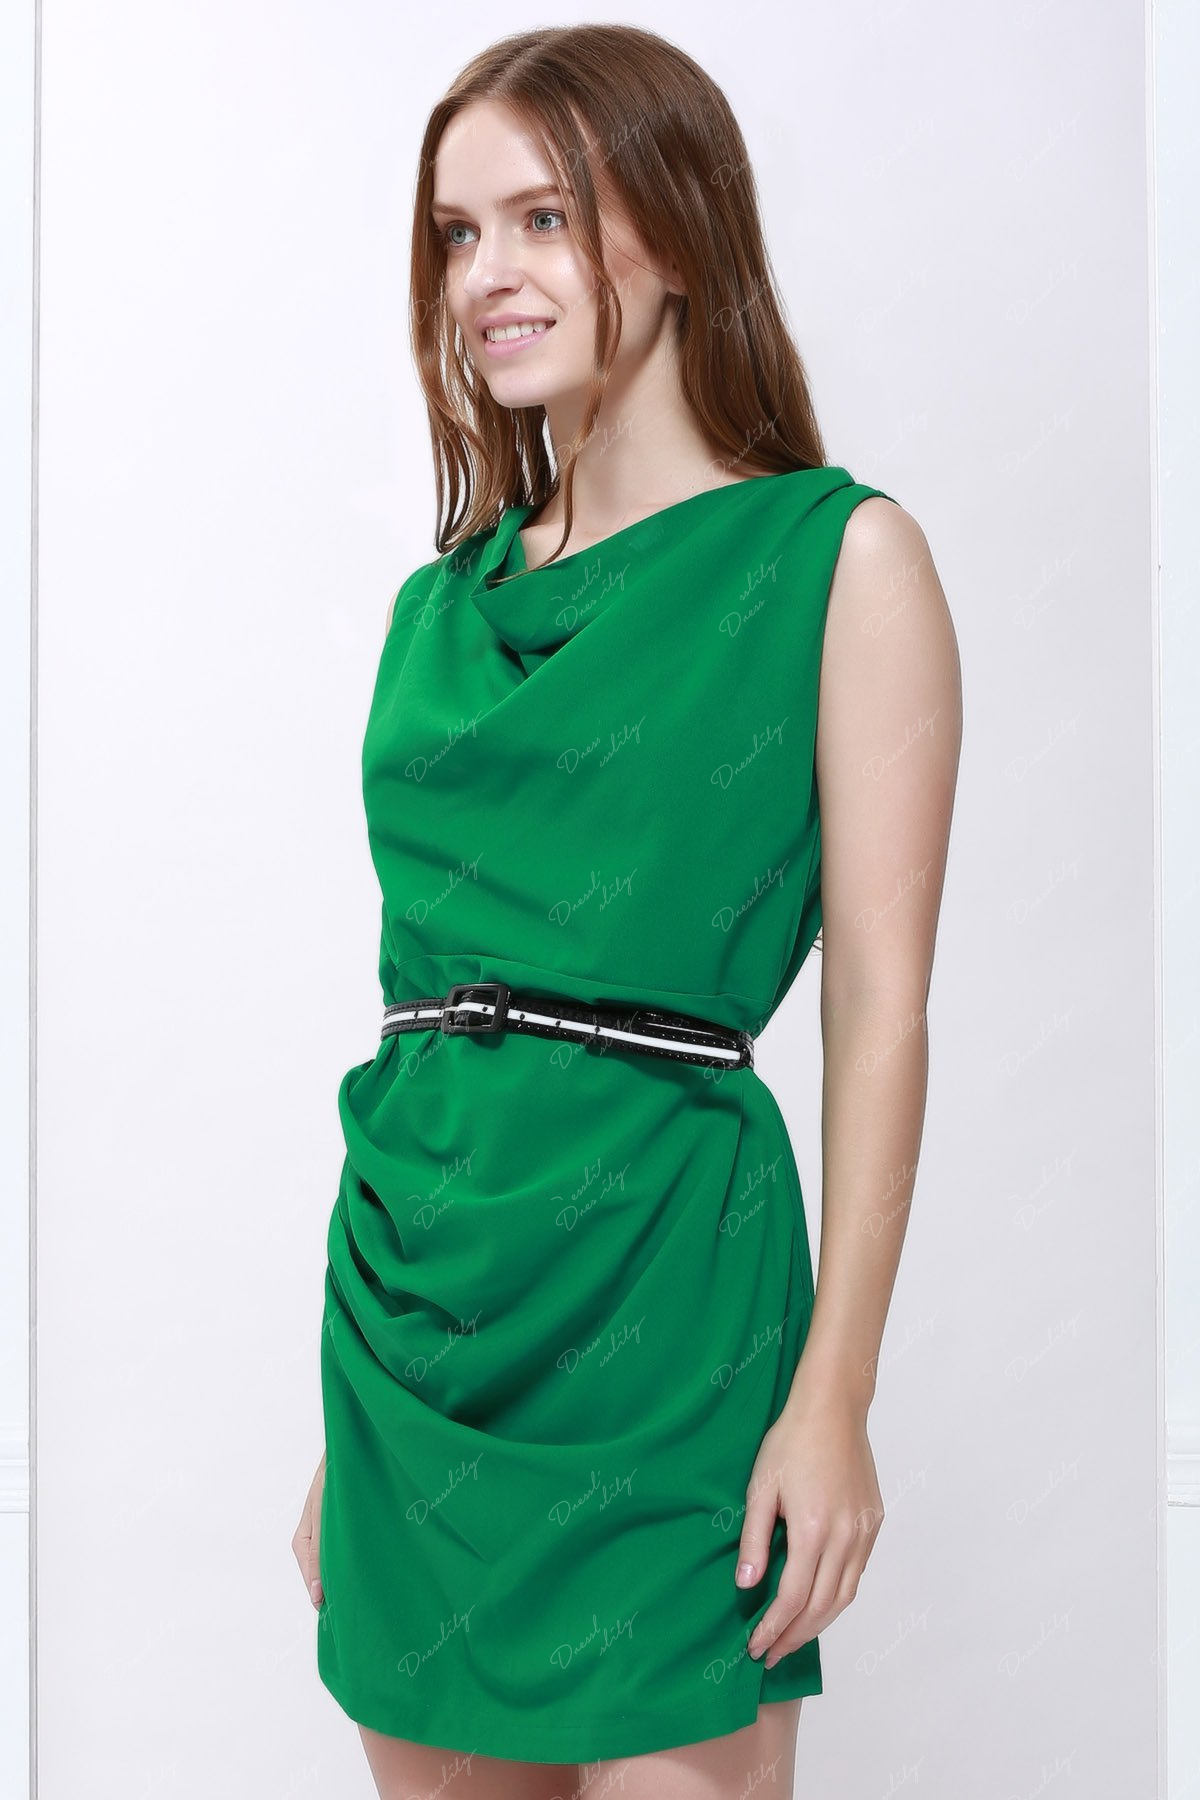 Slimming Cowl Neck Sleeveless Belt Design Solid Color Packet Buttock Dress - GREEN S